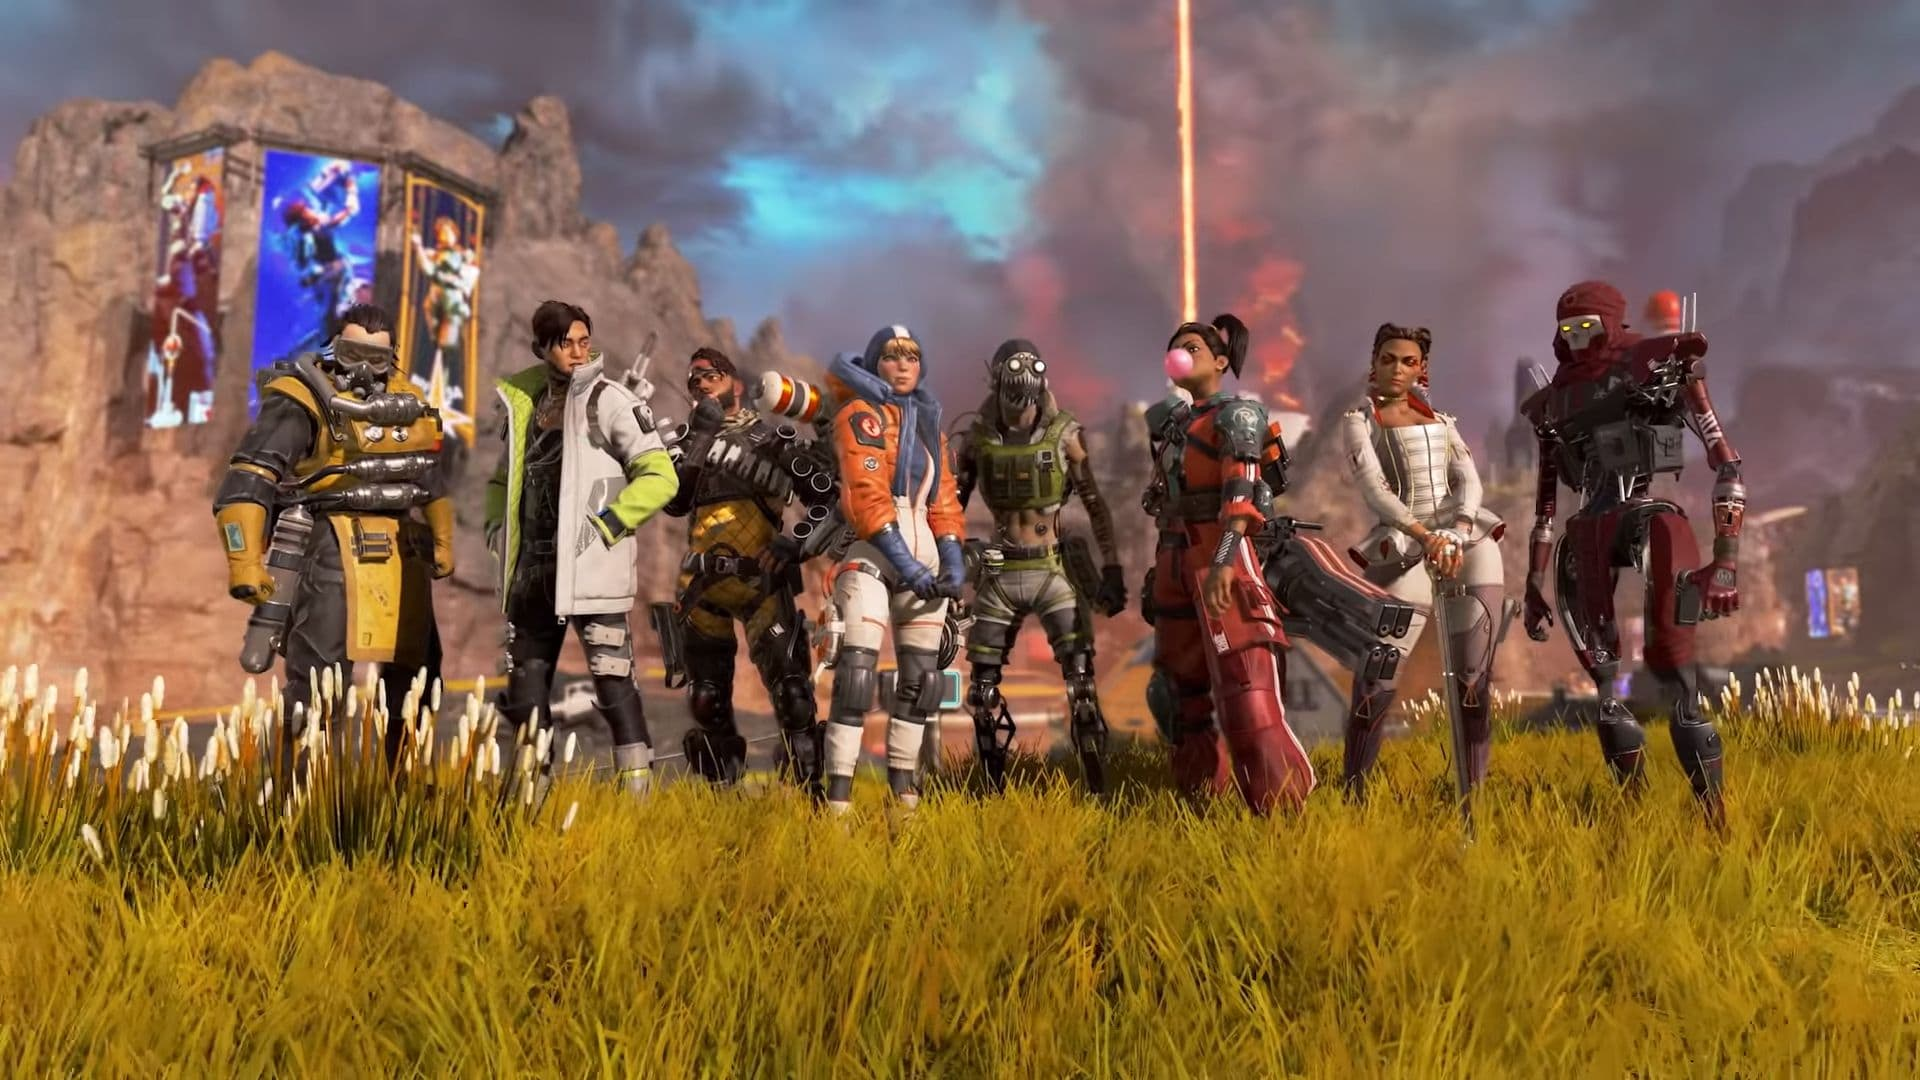 Then Apex Legends will be released for the Nintendo Switch